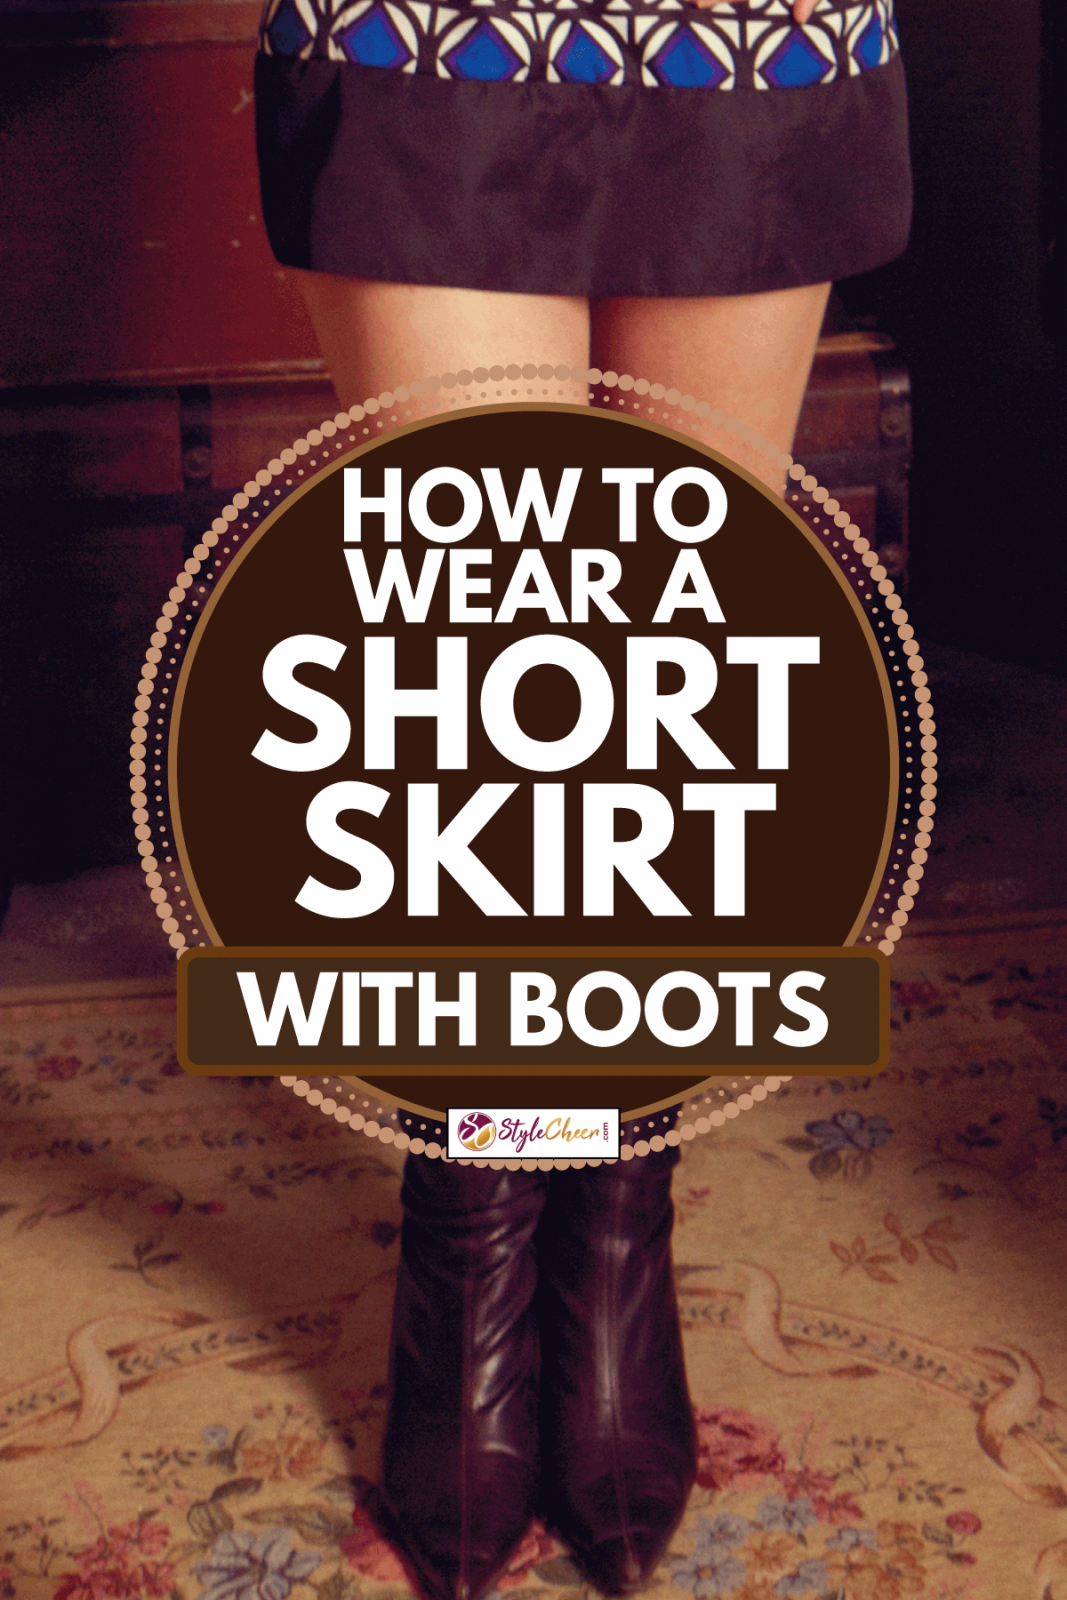 Sexy Retro legs And A Miniskirt, How To Wear A Short Skirt With Boots